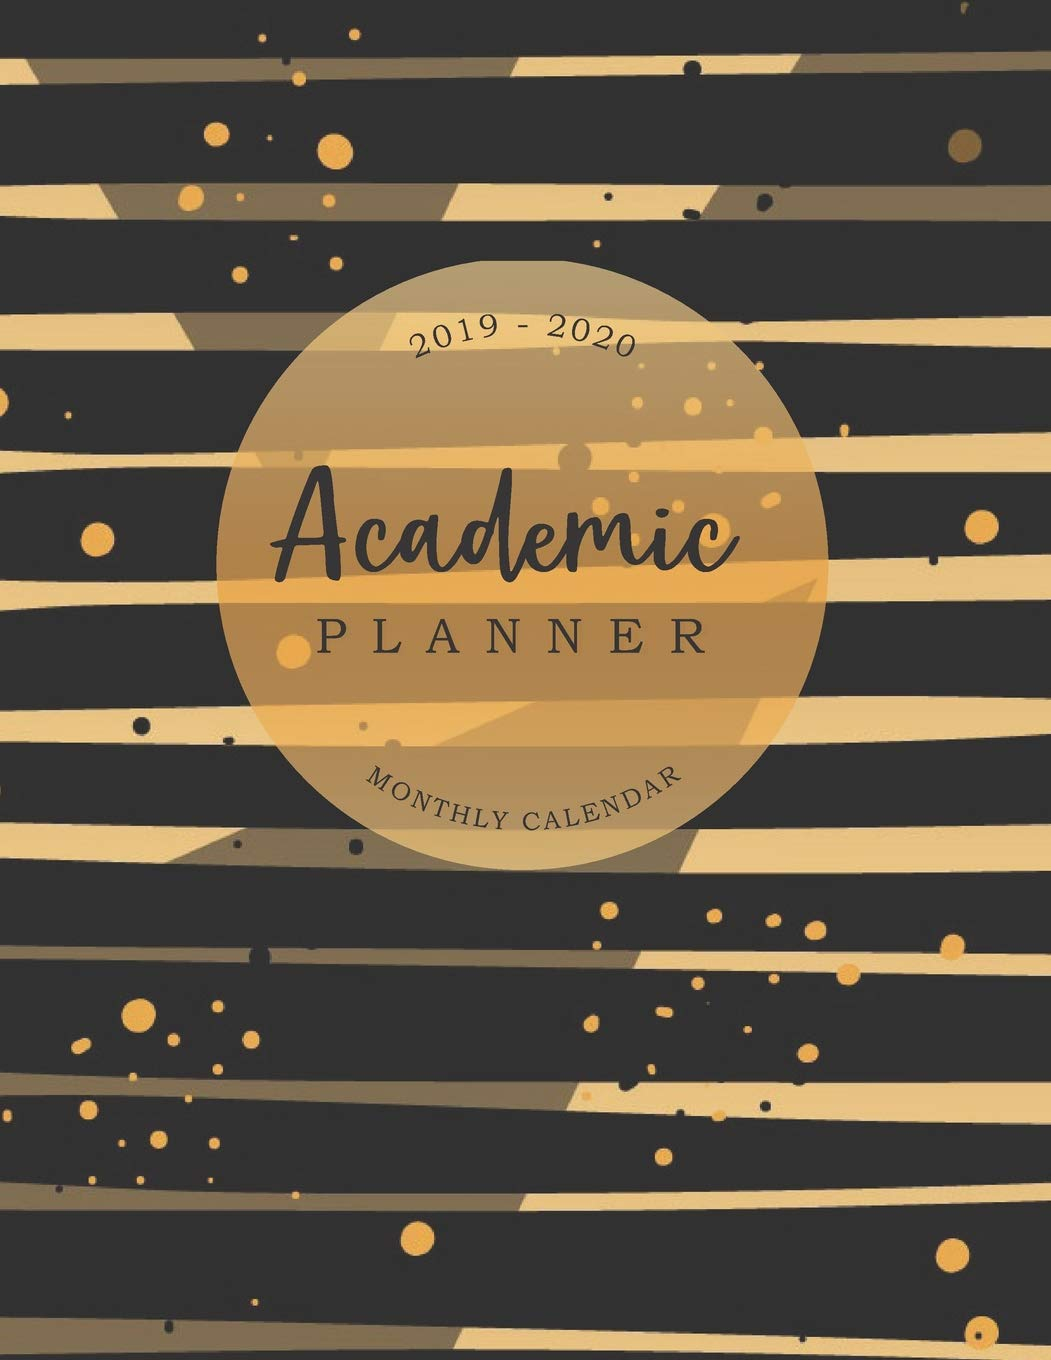 Gsu Academic Calendar Summer 2020.Buy Academic Planner Monthly Calendar 2019 2020 Daily